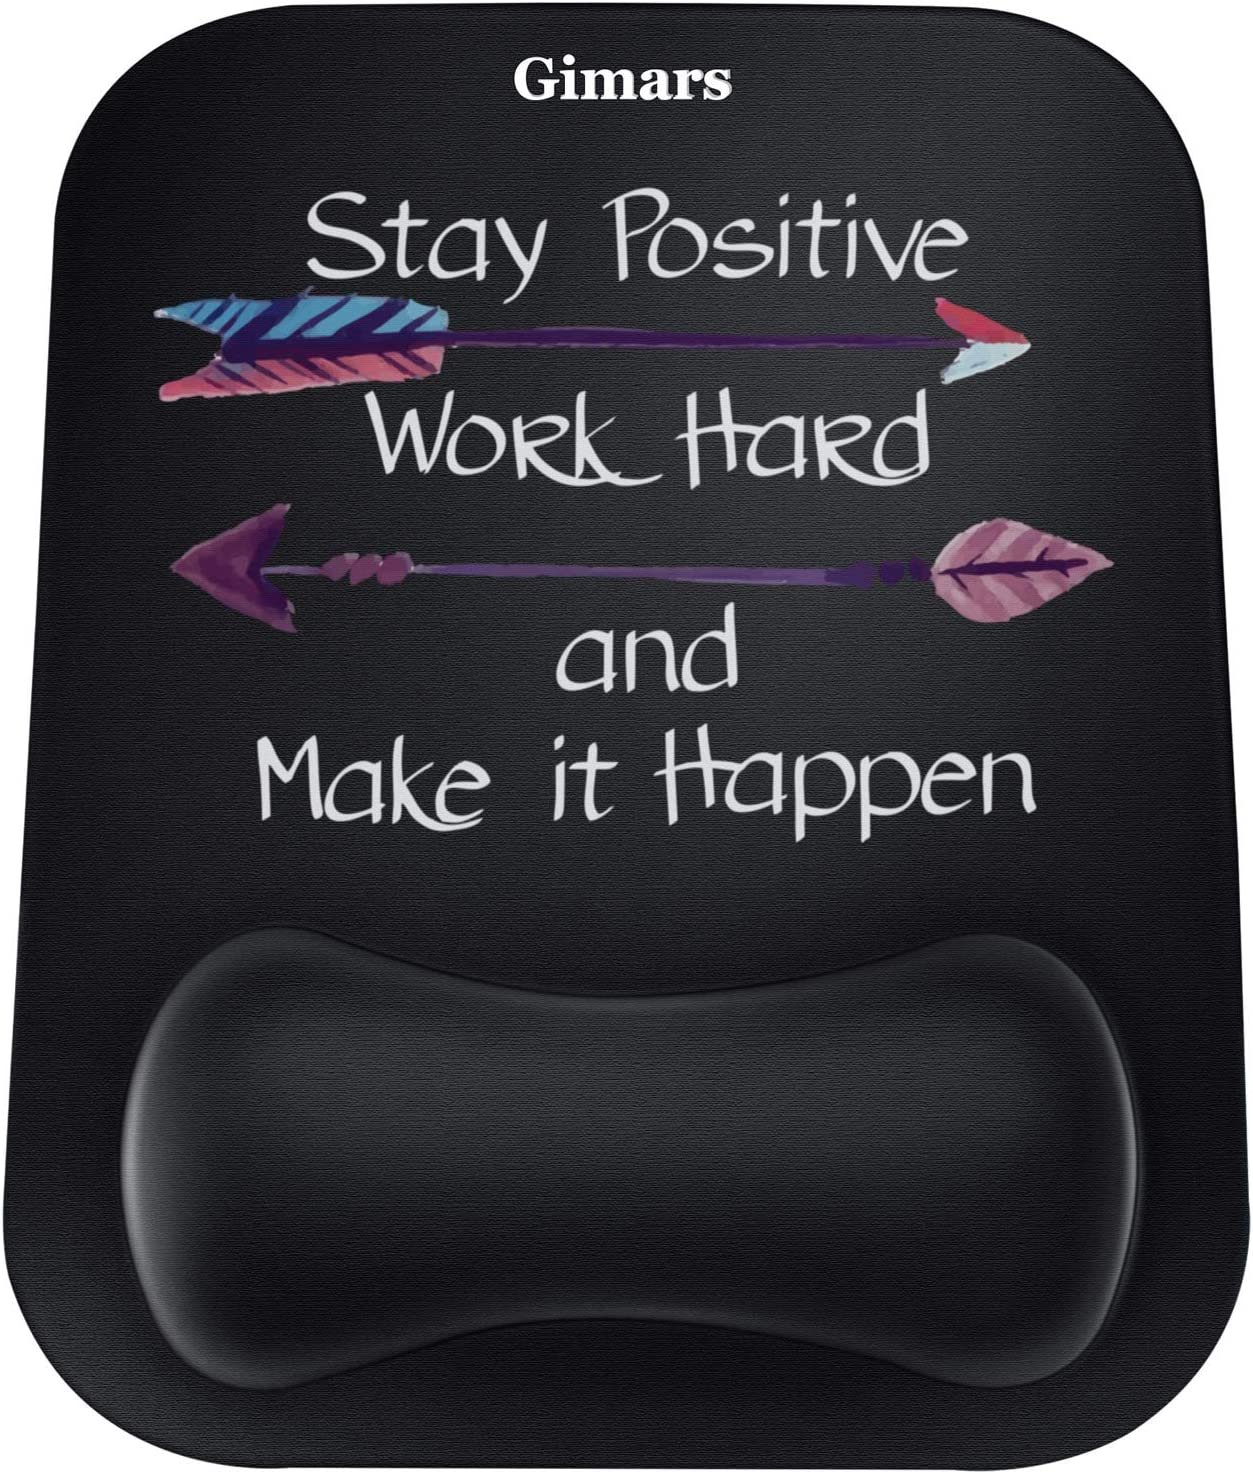 Gimars Large Gel Memory Foam Ergonomic Mouse Pad Wrist Rest Support - Positive Life Theme Mousepad for Laptop, Computer, Gaming, Office - Comfortable for Easy Typing and Pain Relief